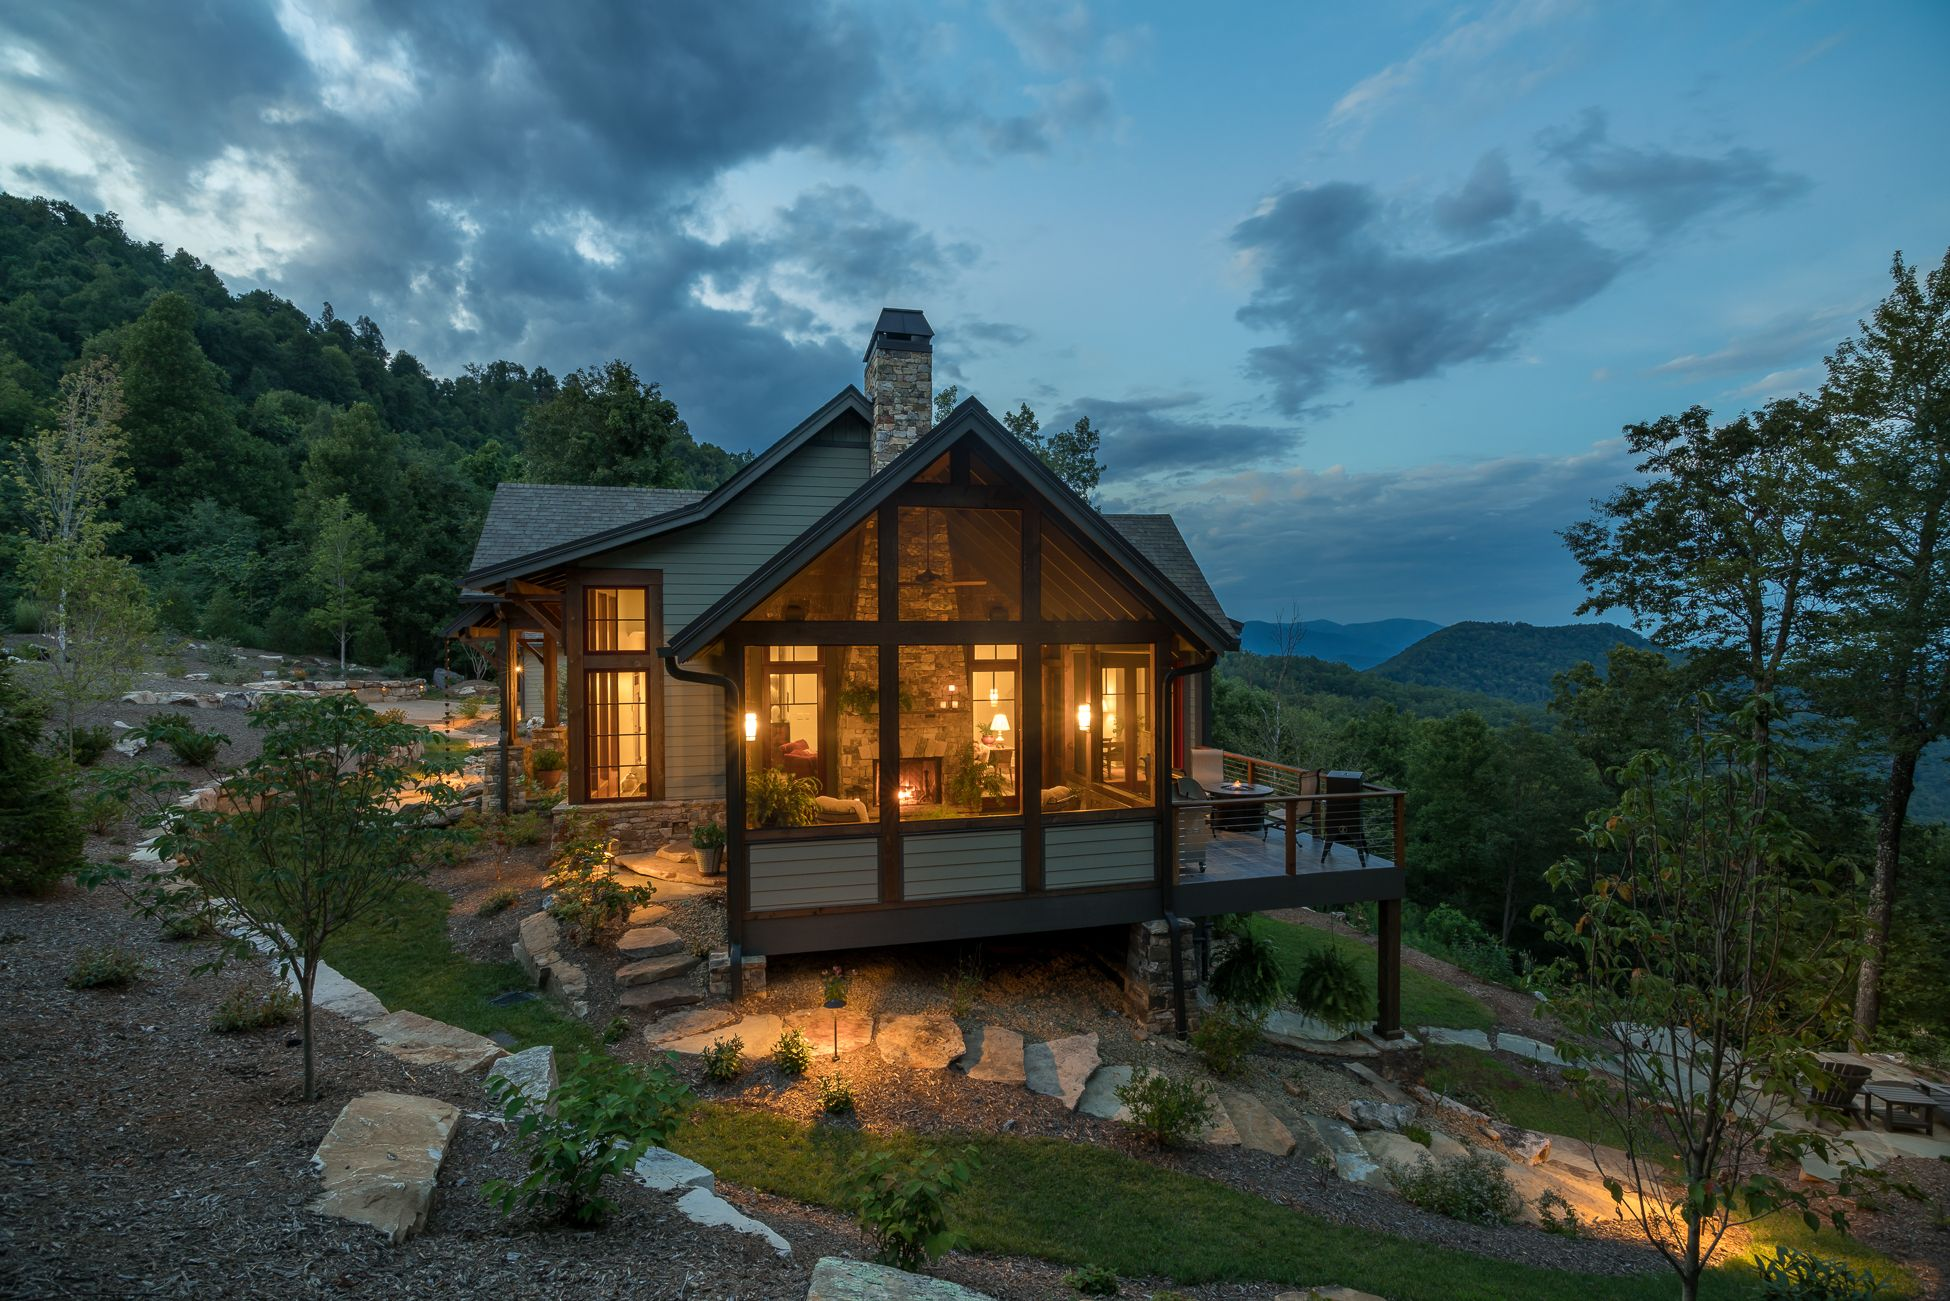 Black Mountain Rustic Modern Farmhouse Acm Design Architecture Interiors Rustic Houses Exterior Mountain Home Exterior Rustic House